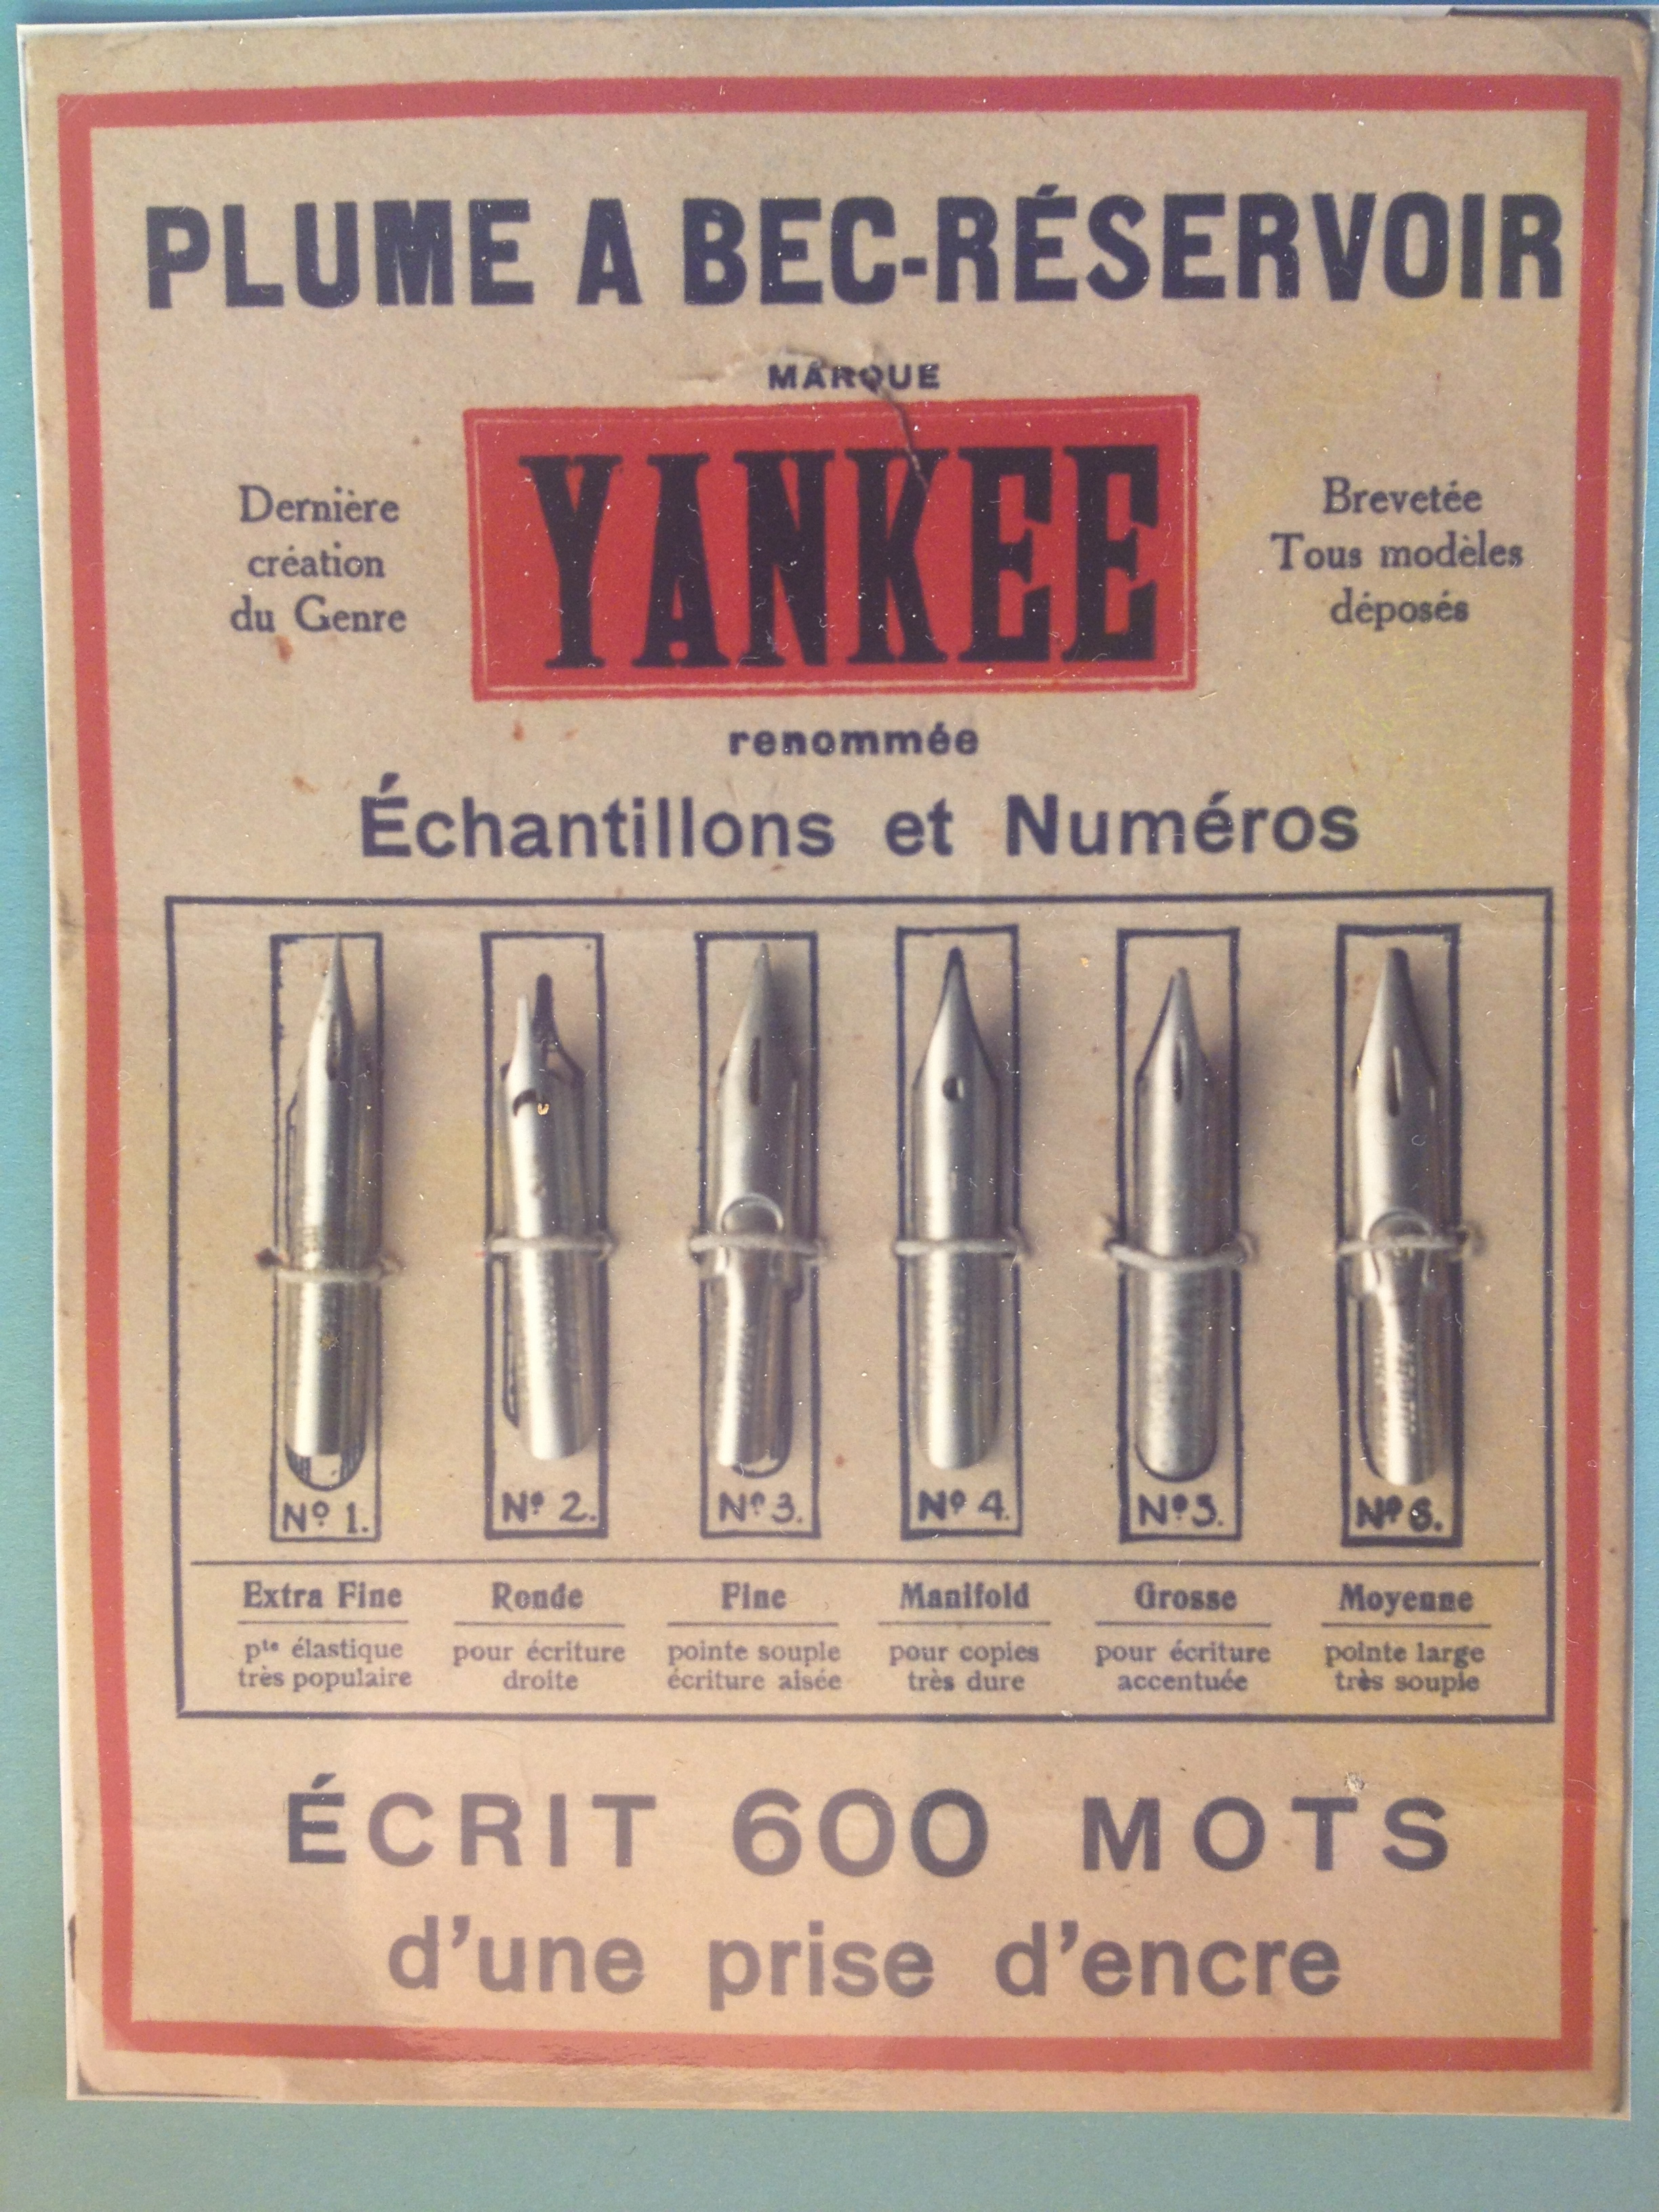 or get yourself one of those new-fangled Yankee steel nibs.